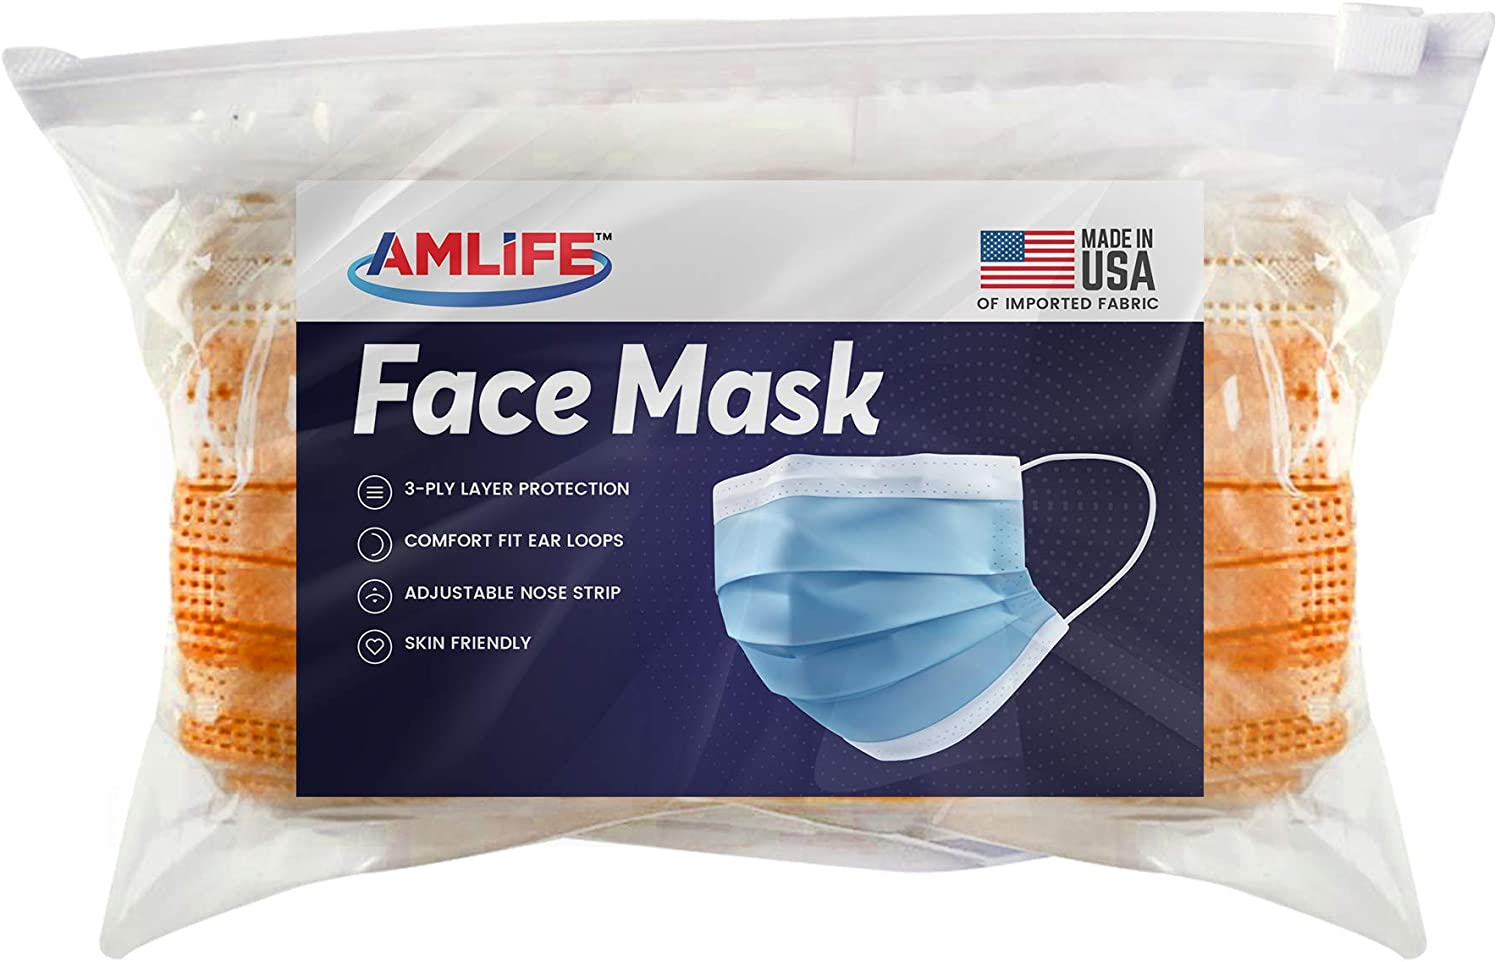 AMLIFE Face Masks [50 Pieces Pack] Disposable Protective 3-Ply Filter - Made in USA with Imported Fabric - Convenient Zipper Bag - Orange